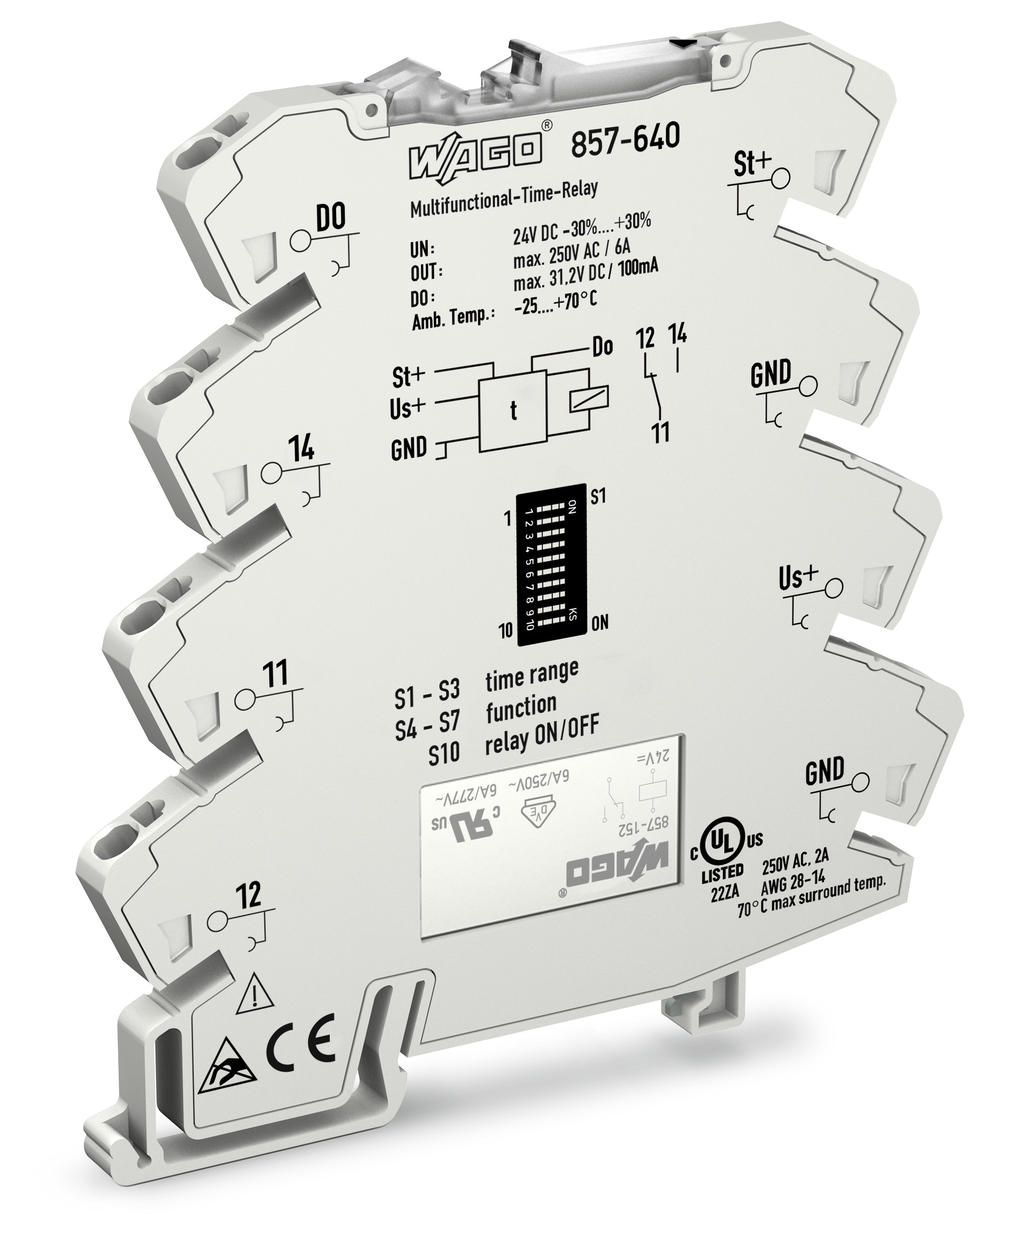 Wago Multifunction Timing Relay With 1 Changeover Contact 1u Through An Optocoupler Circuit Electronic Projects 8 Tiem Ranges 14 Functions Temperature Range 25 C 70 For Railway Operations